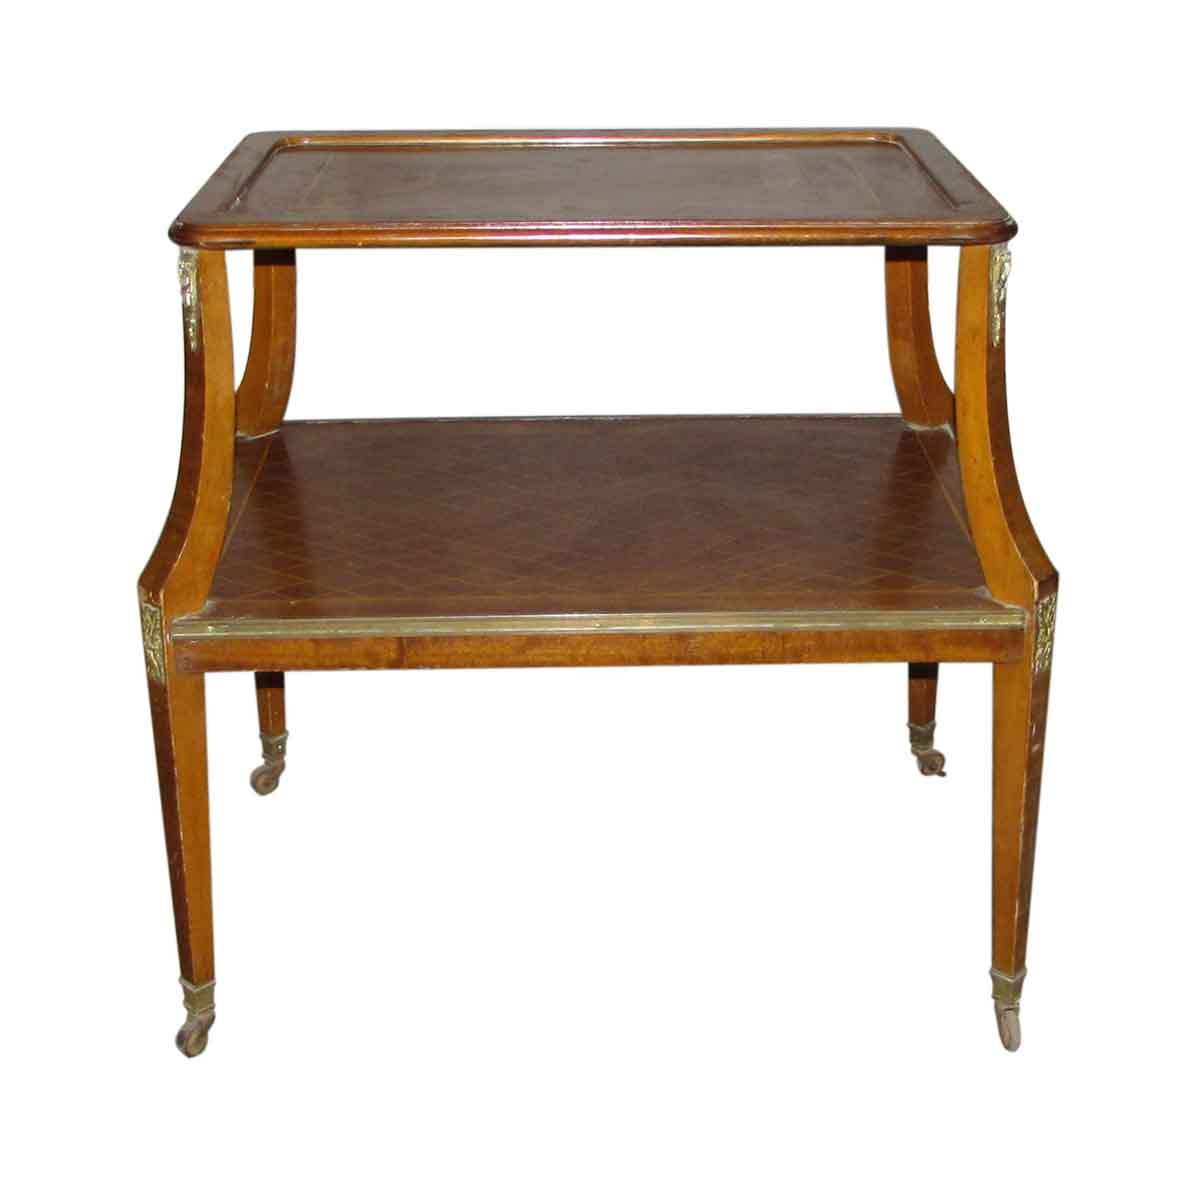 Antique diamond design end table olde good things - Antique side tables for living room ...